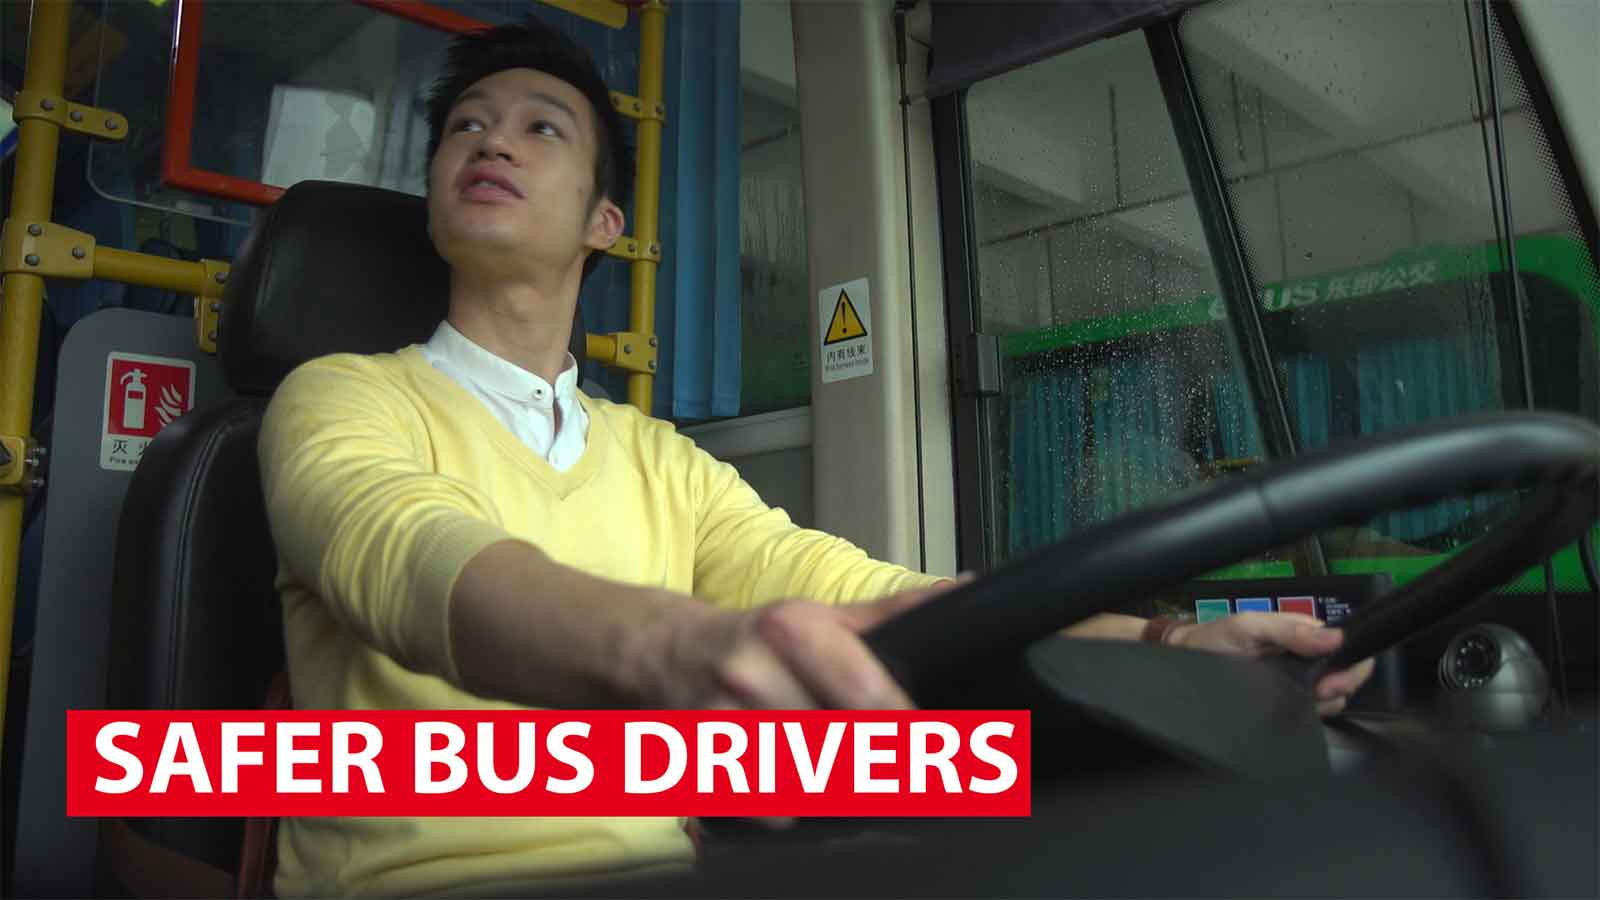 Safer bus drivers